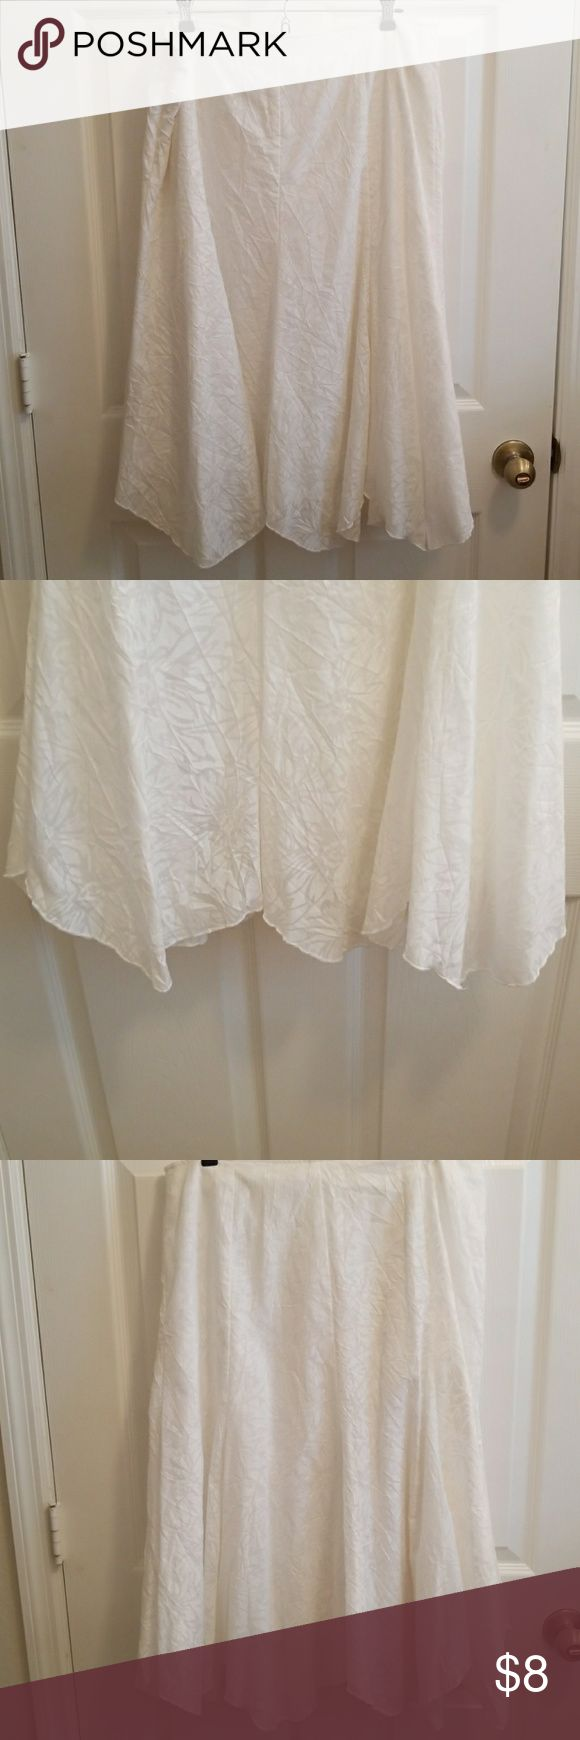 Very nice white skirts cute material and sprints This skirts is great for the summer time the tag is cut off so please look at the pictures with the measurements? The skirts is used but still in good condition no flow. No Brand Skirts Maxi